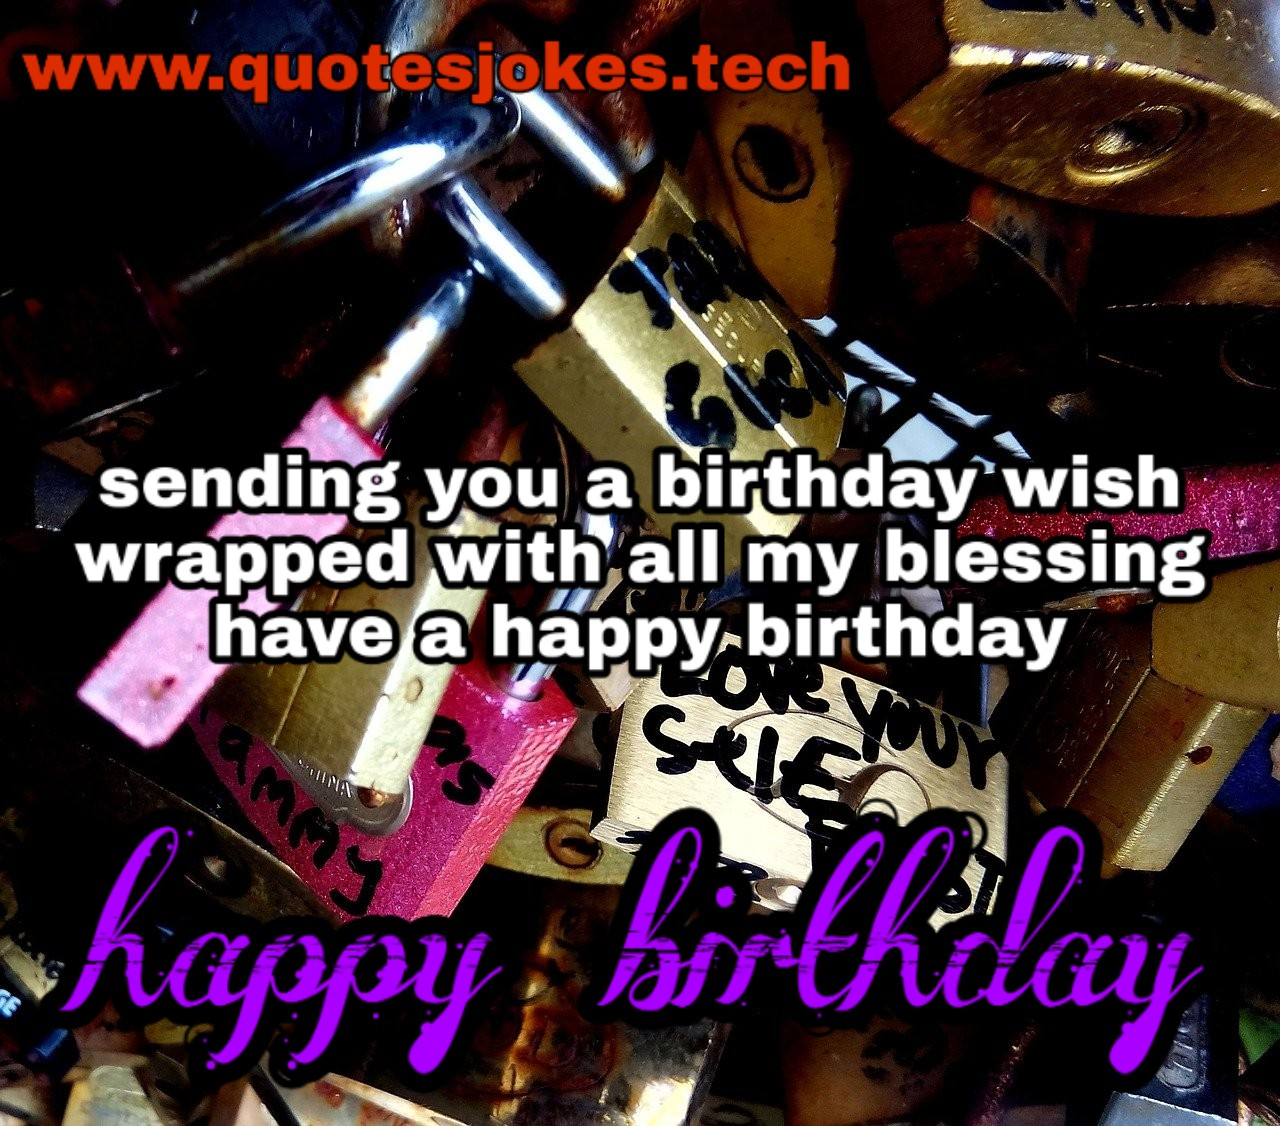 top happy birthday wishes and quotes quotesjokes tech